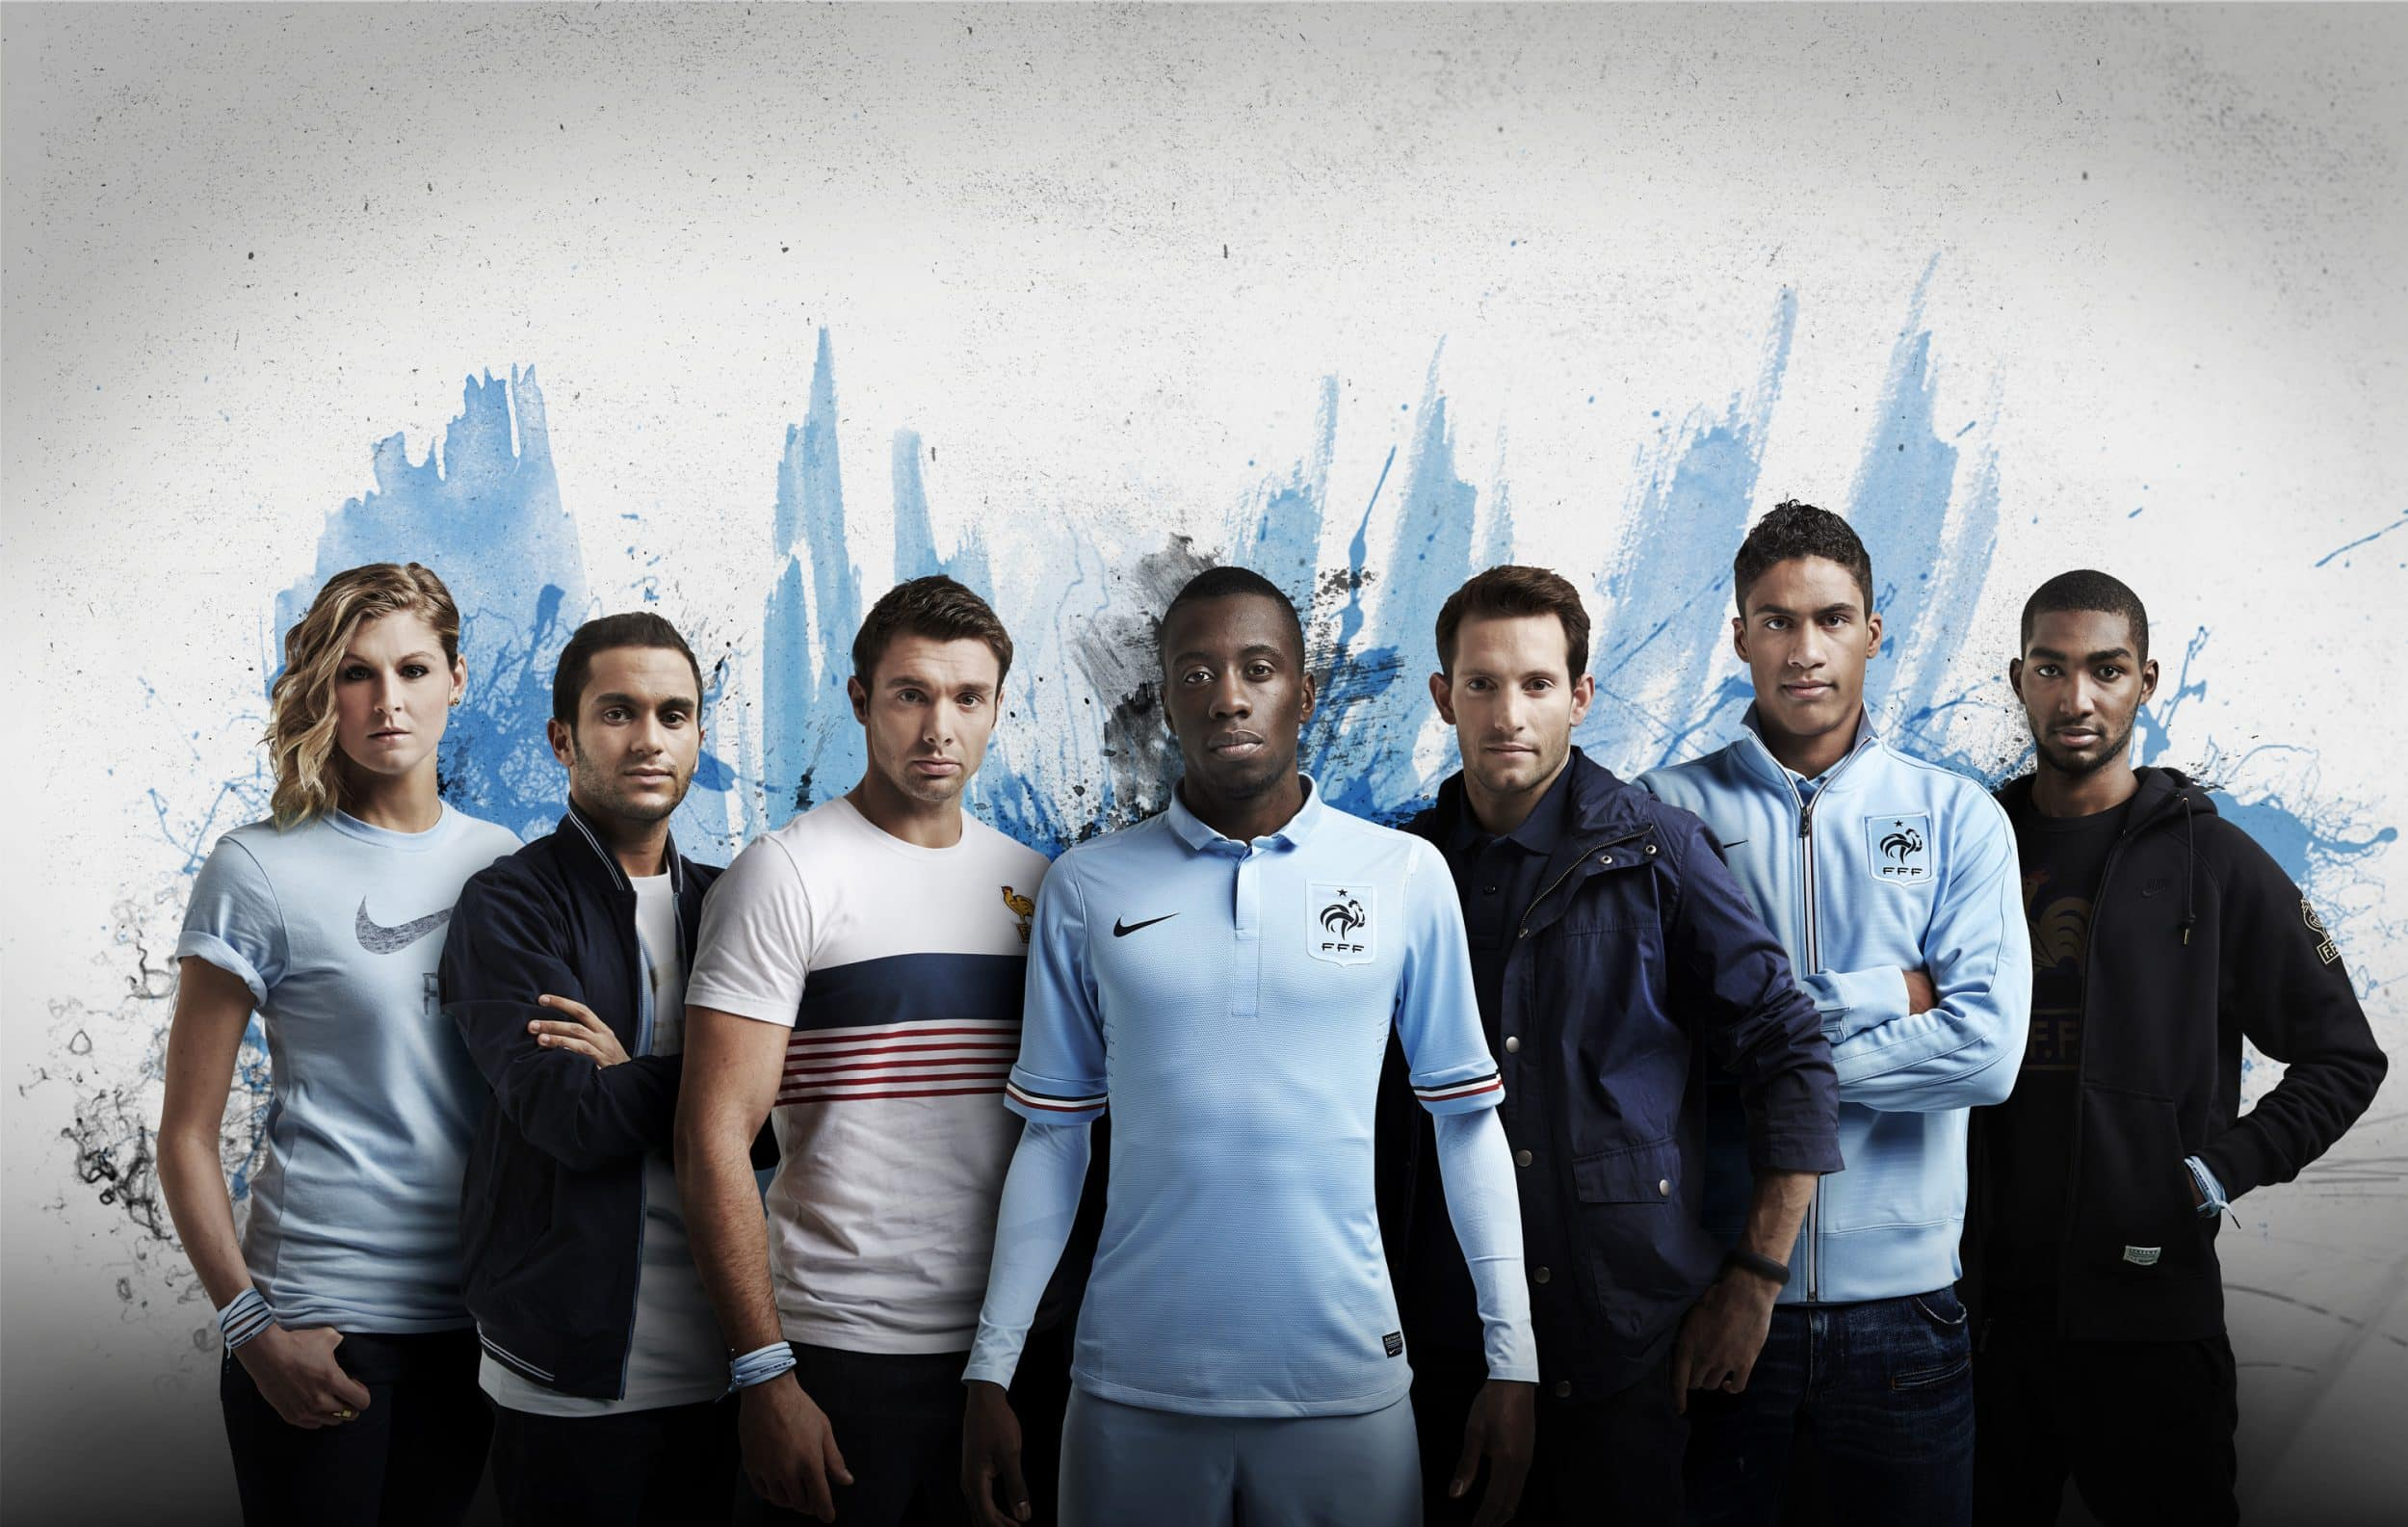 maillot-football-nike-equipe-de-france-exterieur-2013-img1